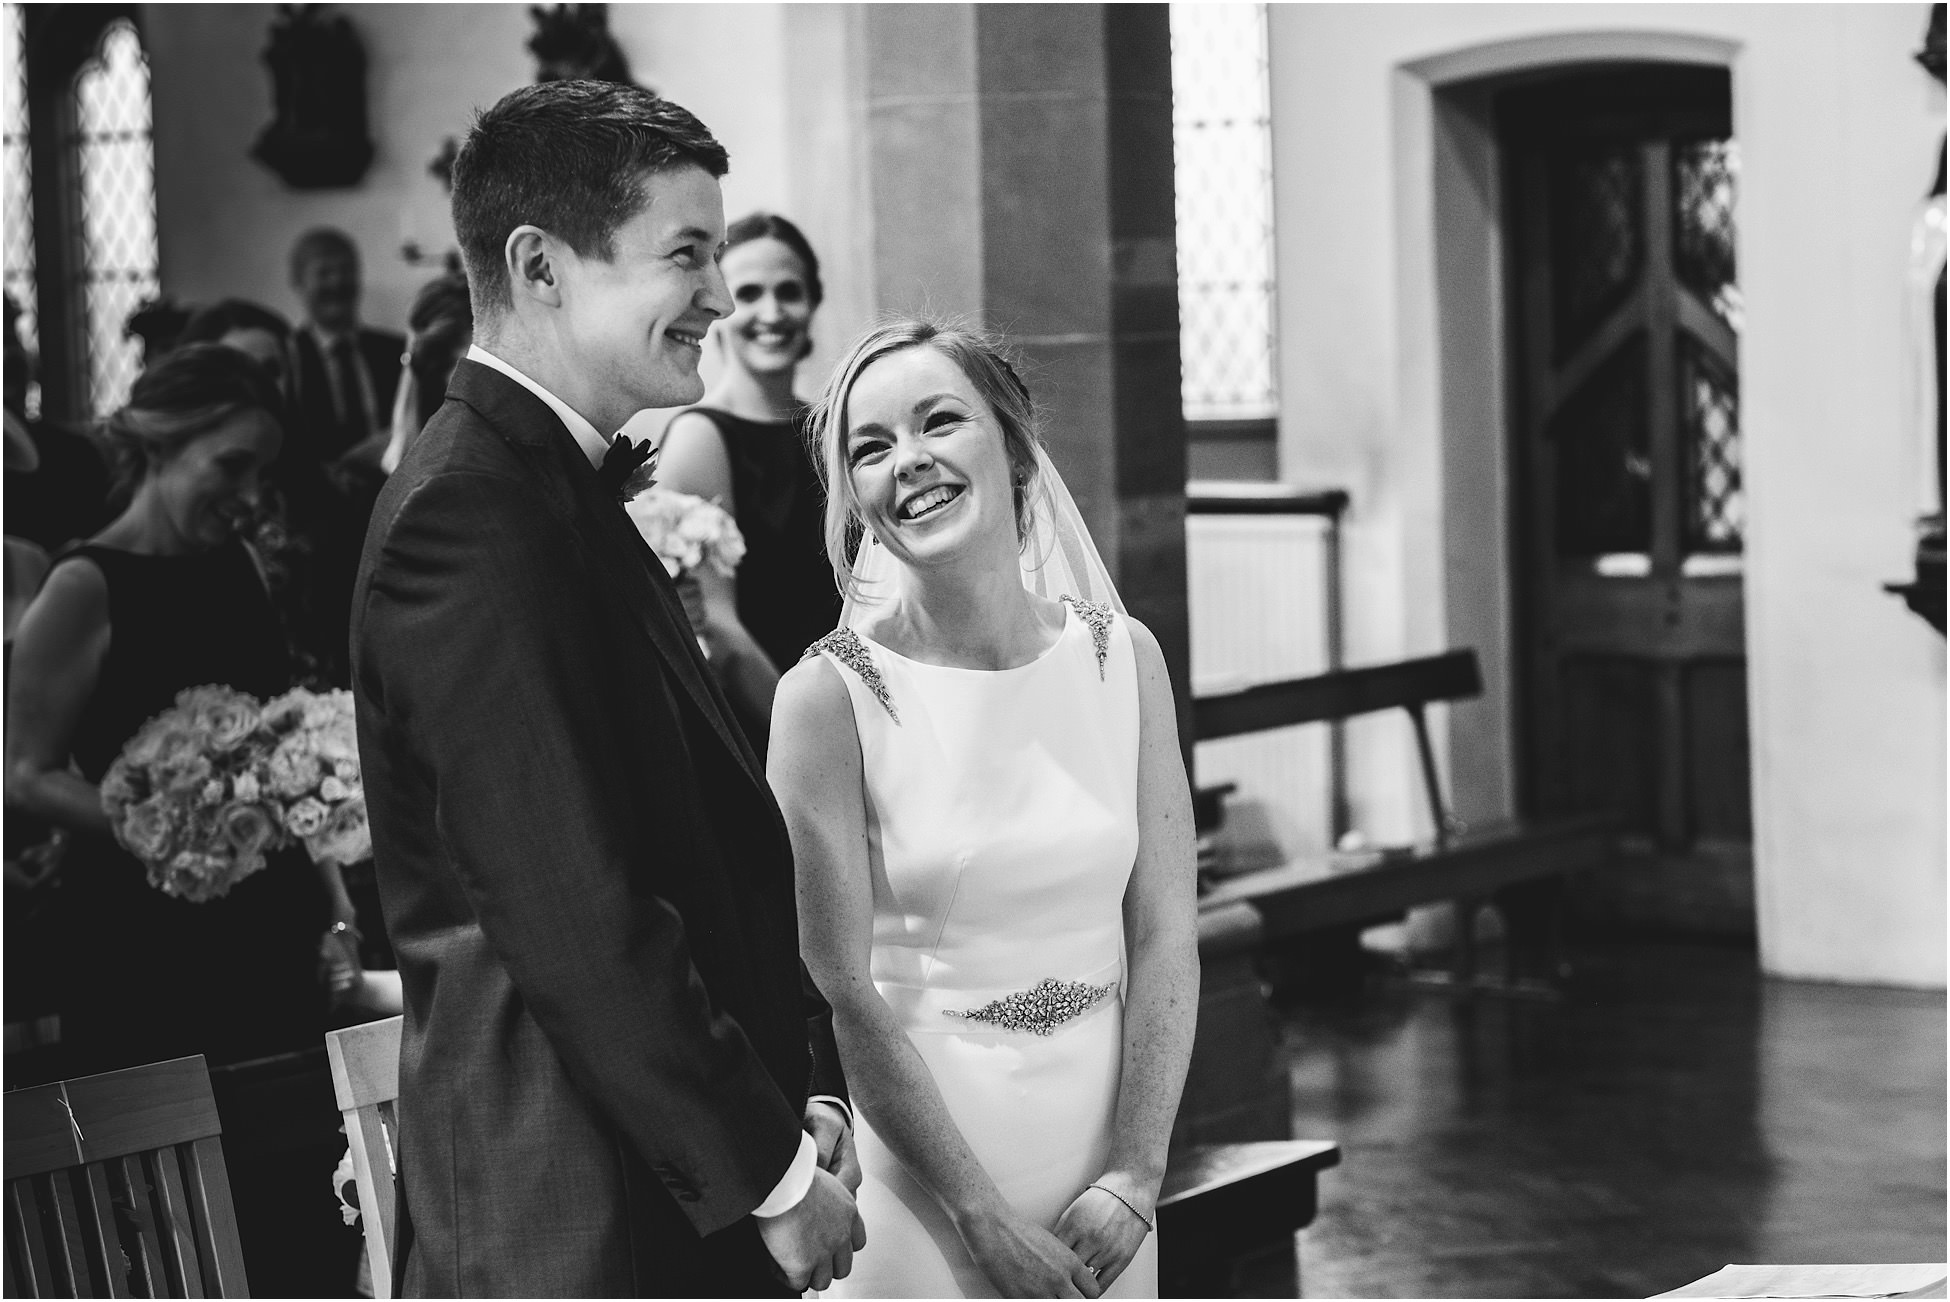 Black and white image of bride and groom stood in church